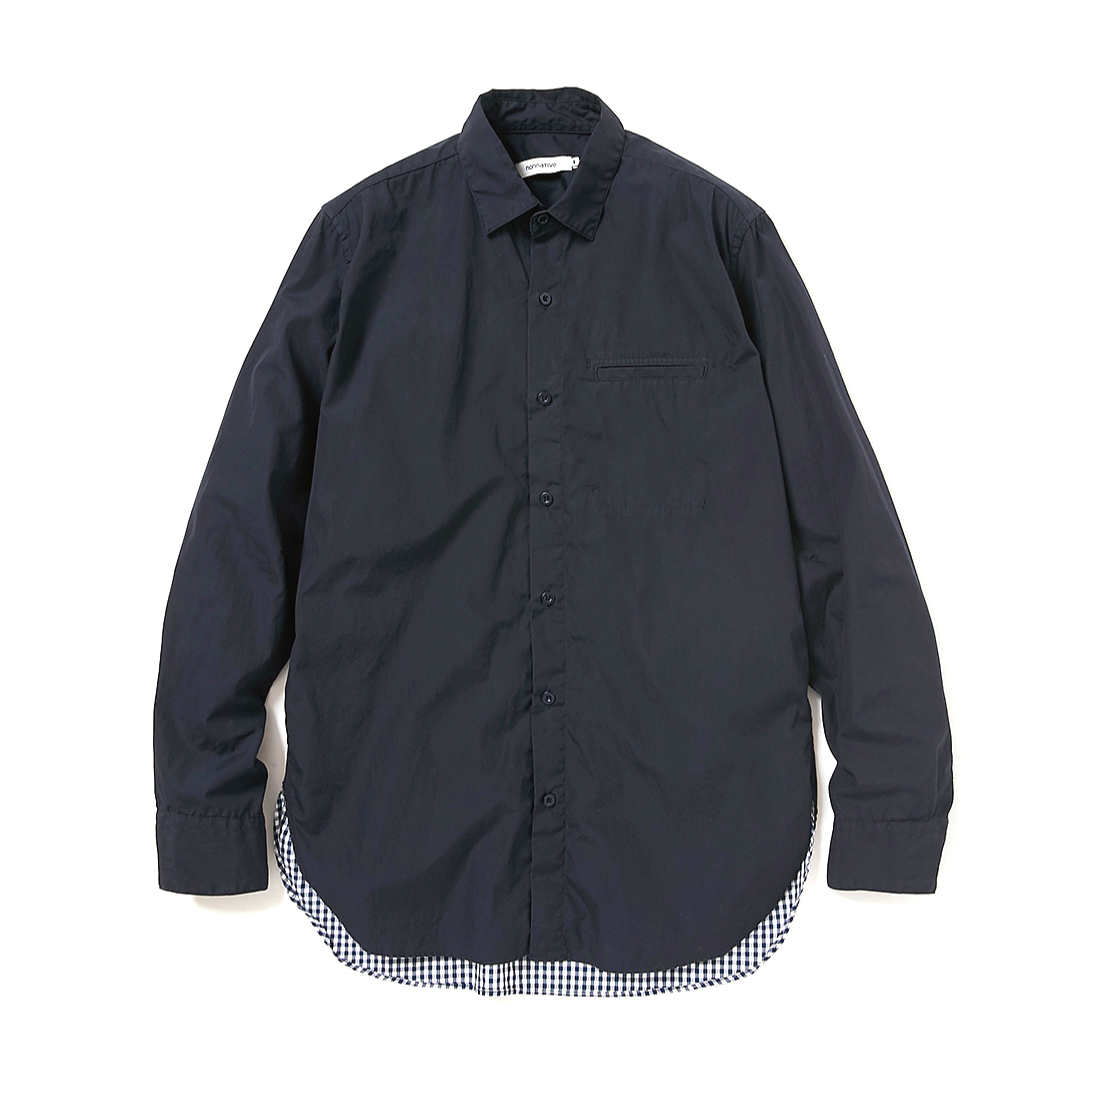 nonnative / CYCLIST EASY RIB PANTS TAPERED FIT N/P TAFFETA STRETCH WITH WINDSTOPPER 3L -EUCALIPTUSnonnative / GARDENER LONG SHIRT COTTON BROAD